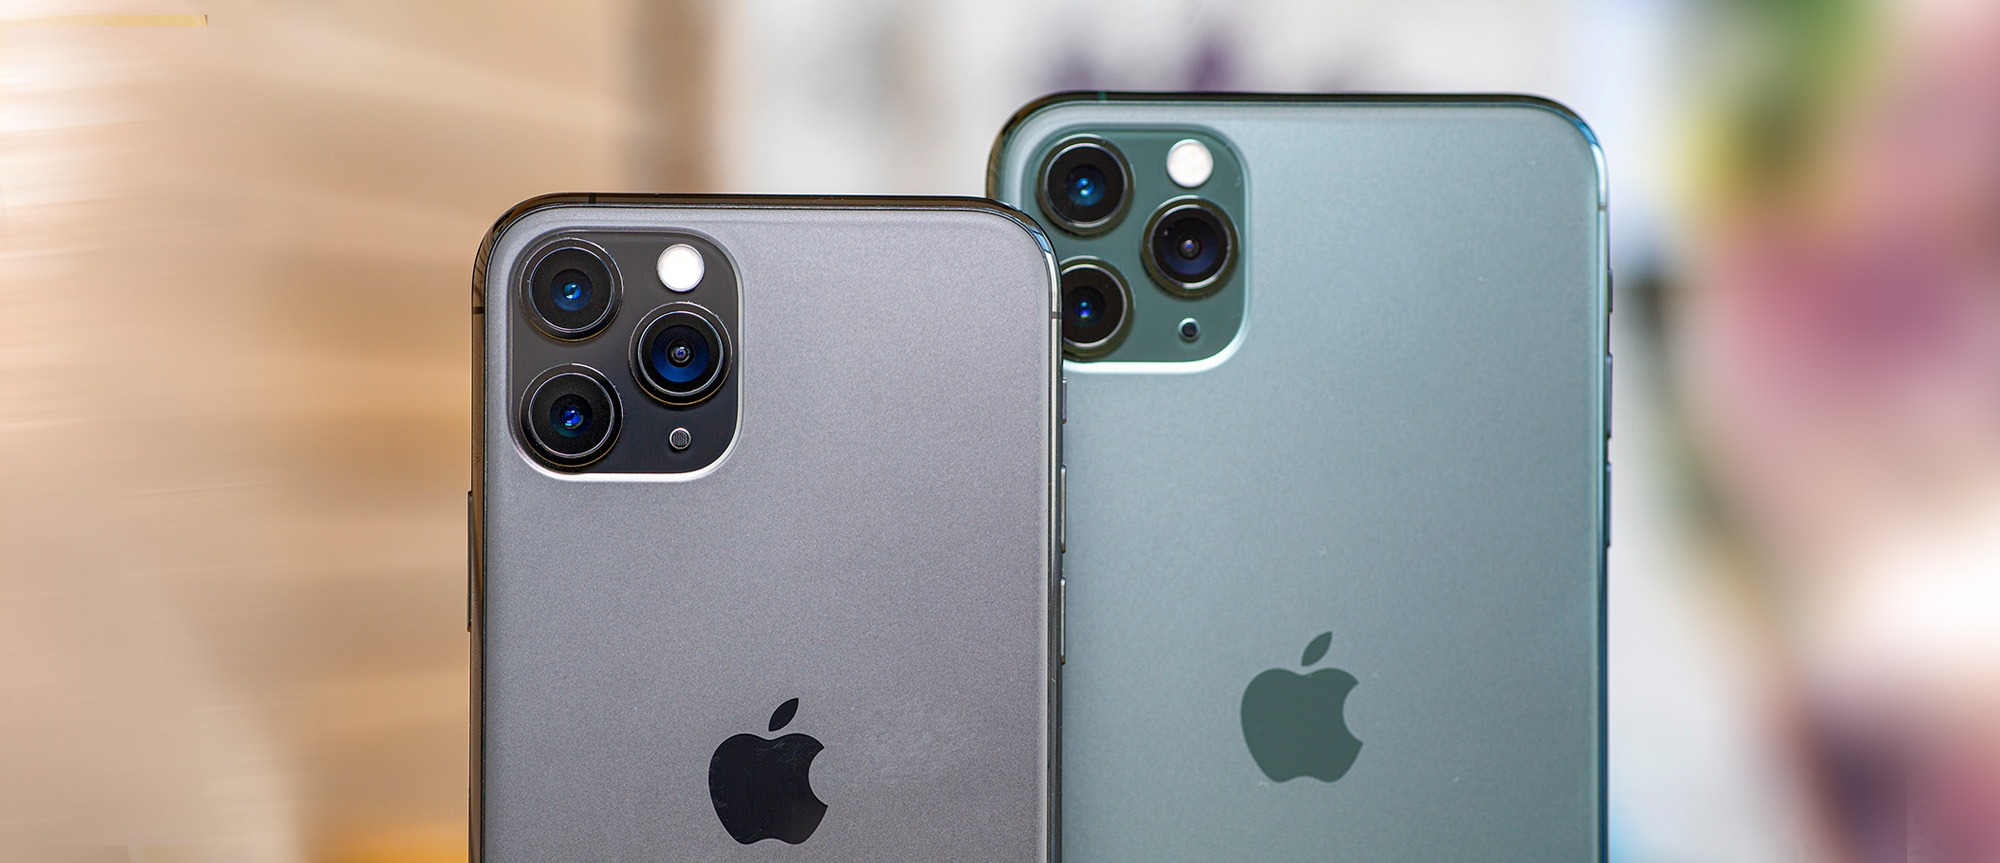 Apple looking to diversify production of ultra-wide-angle lens due to coronavirus - GSMArena.com new